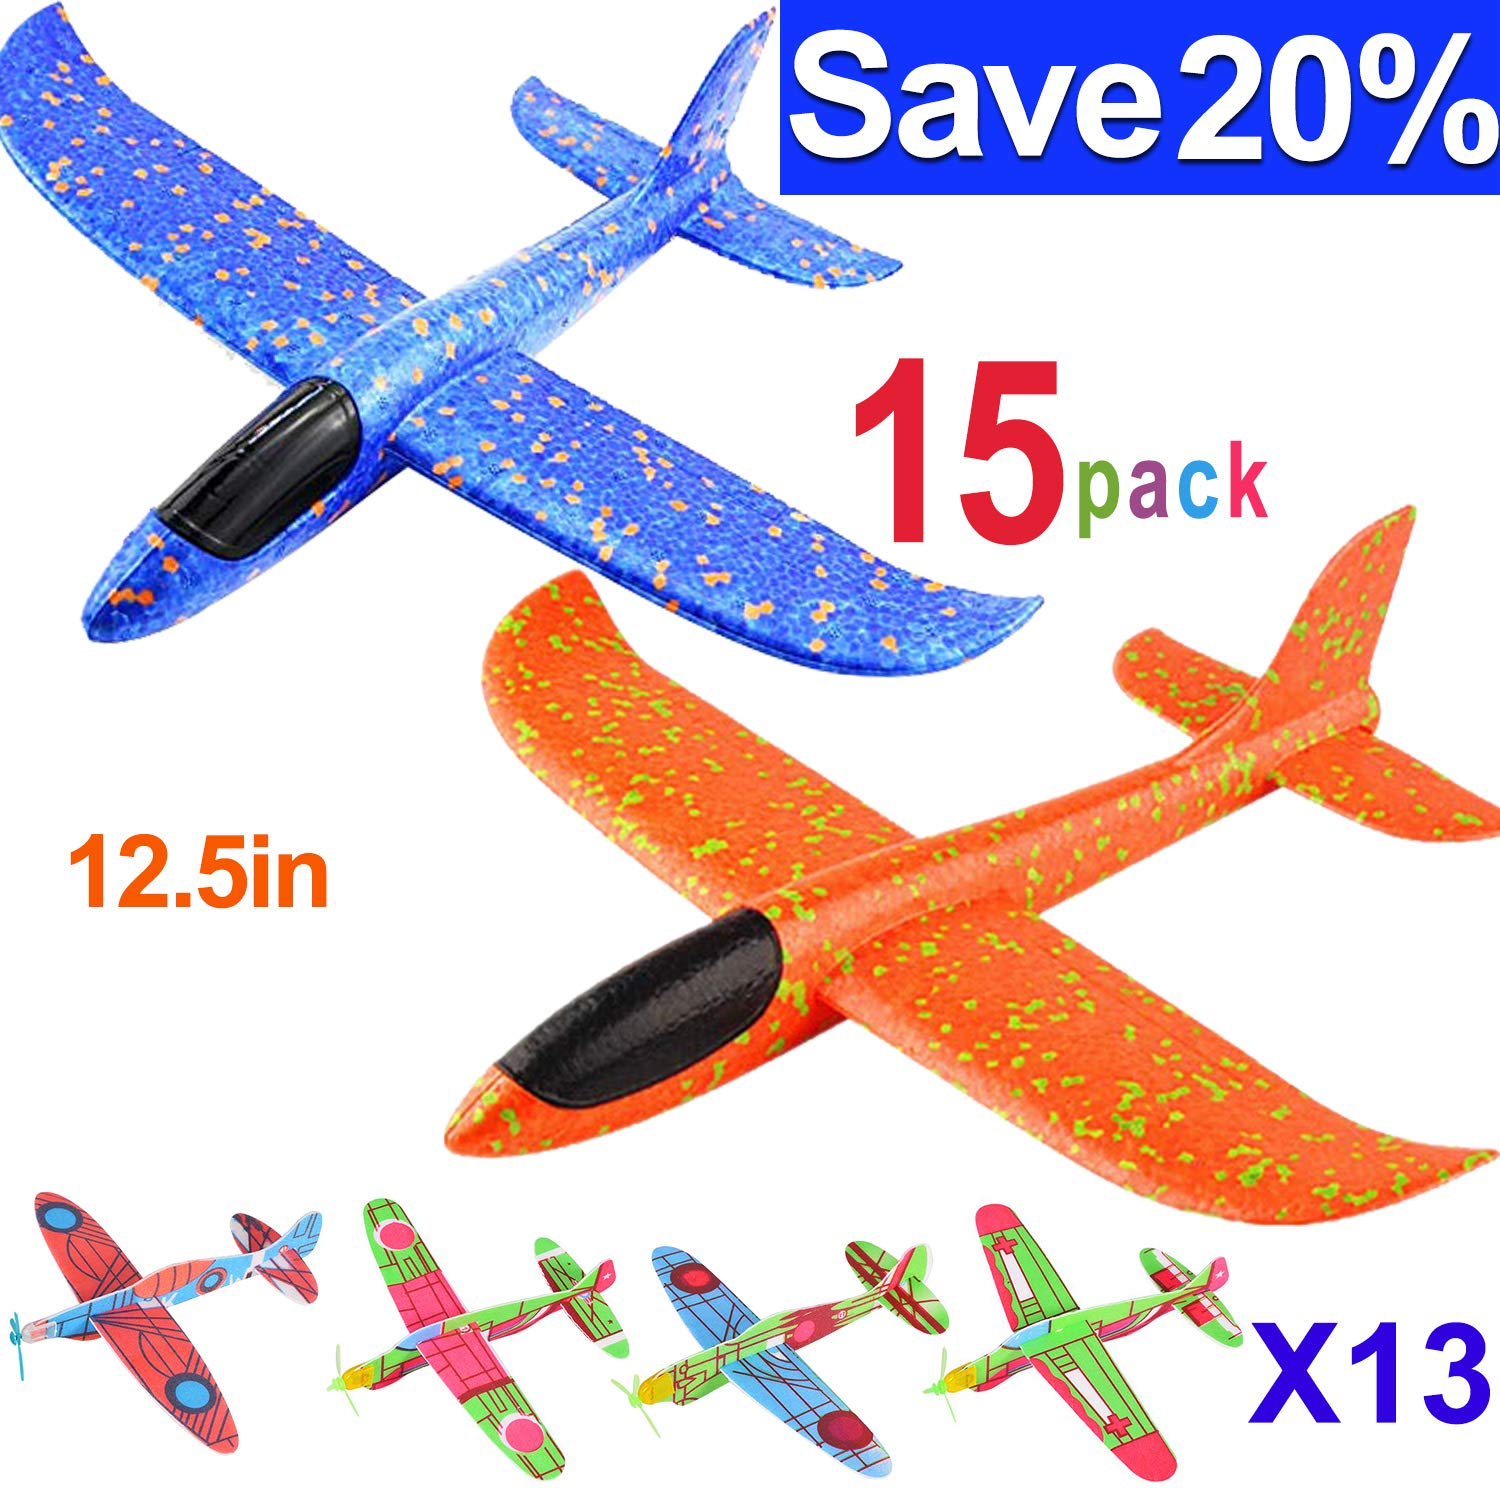 12.5'' Glider Planes,Throwing Foam Airplane ,Dual Flight Mode,Flying Aircraft, Airplane Toy for Kids 3 4 5 6 7 Years Old,Outdoor Sport Game Toys, Boys Girls Flying Party Favors Birthday Gifts by Jupitaz (Image #1)